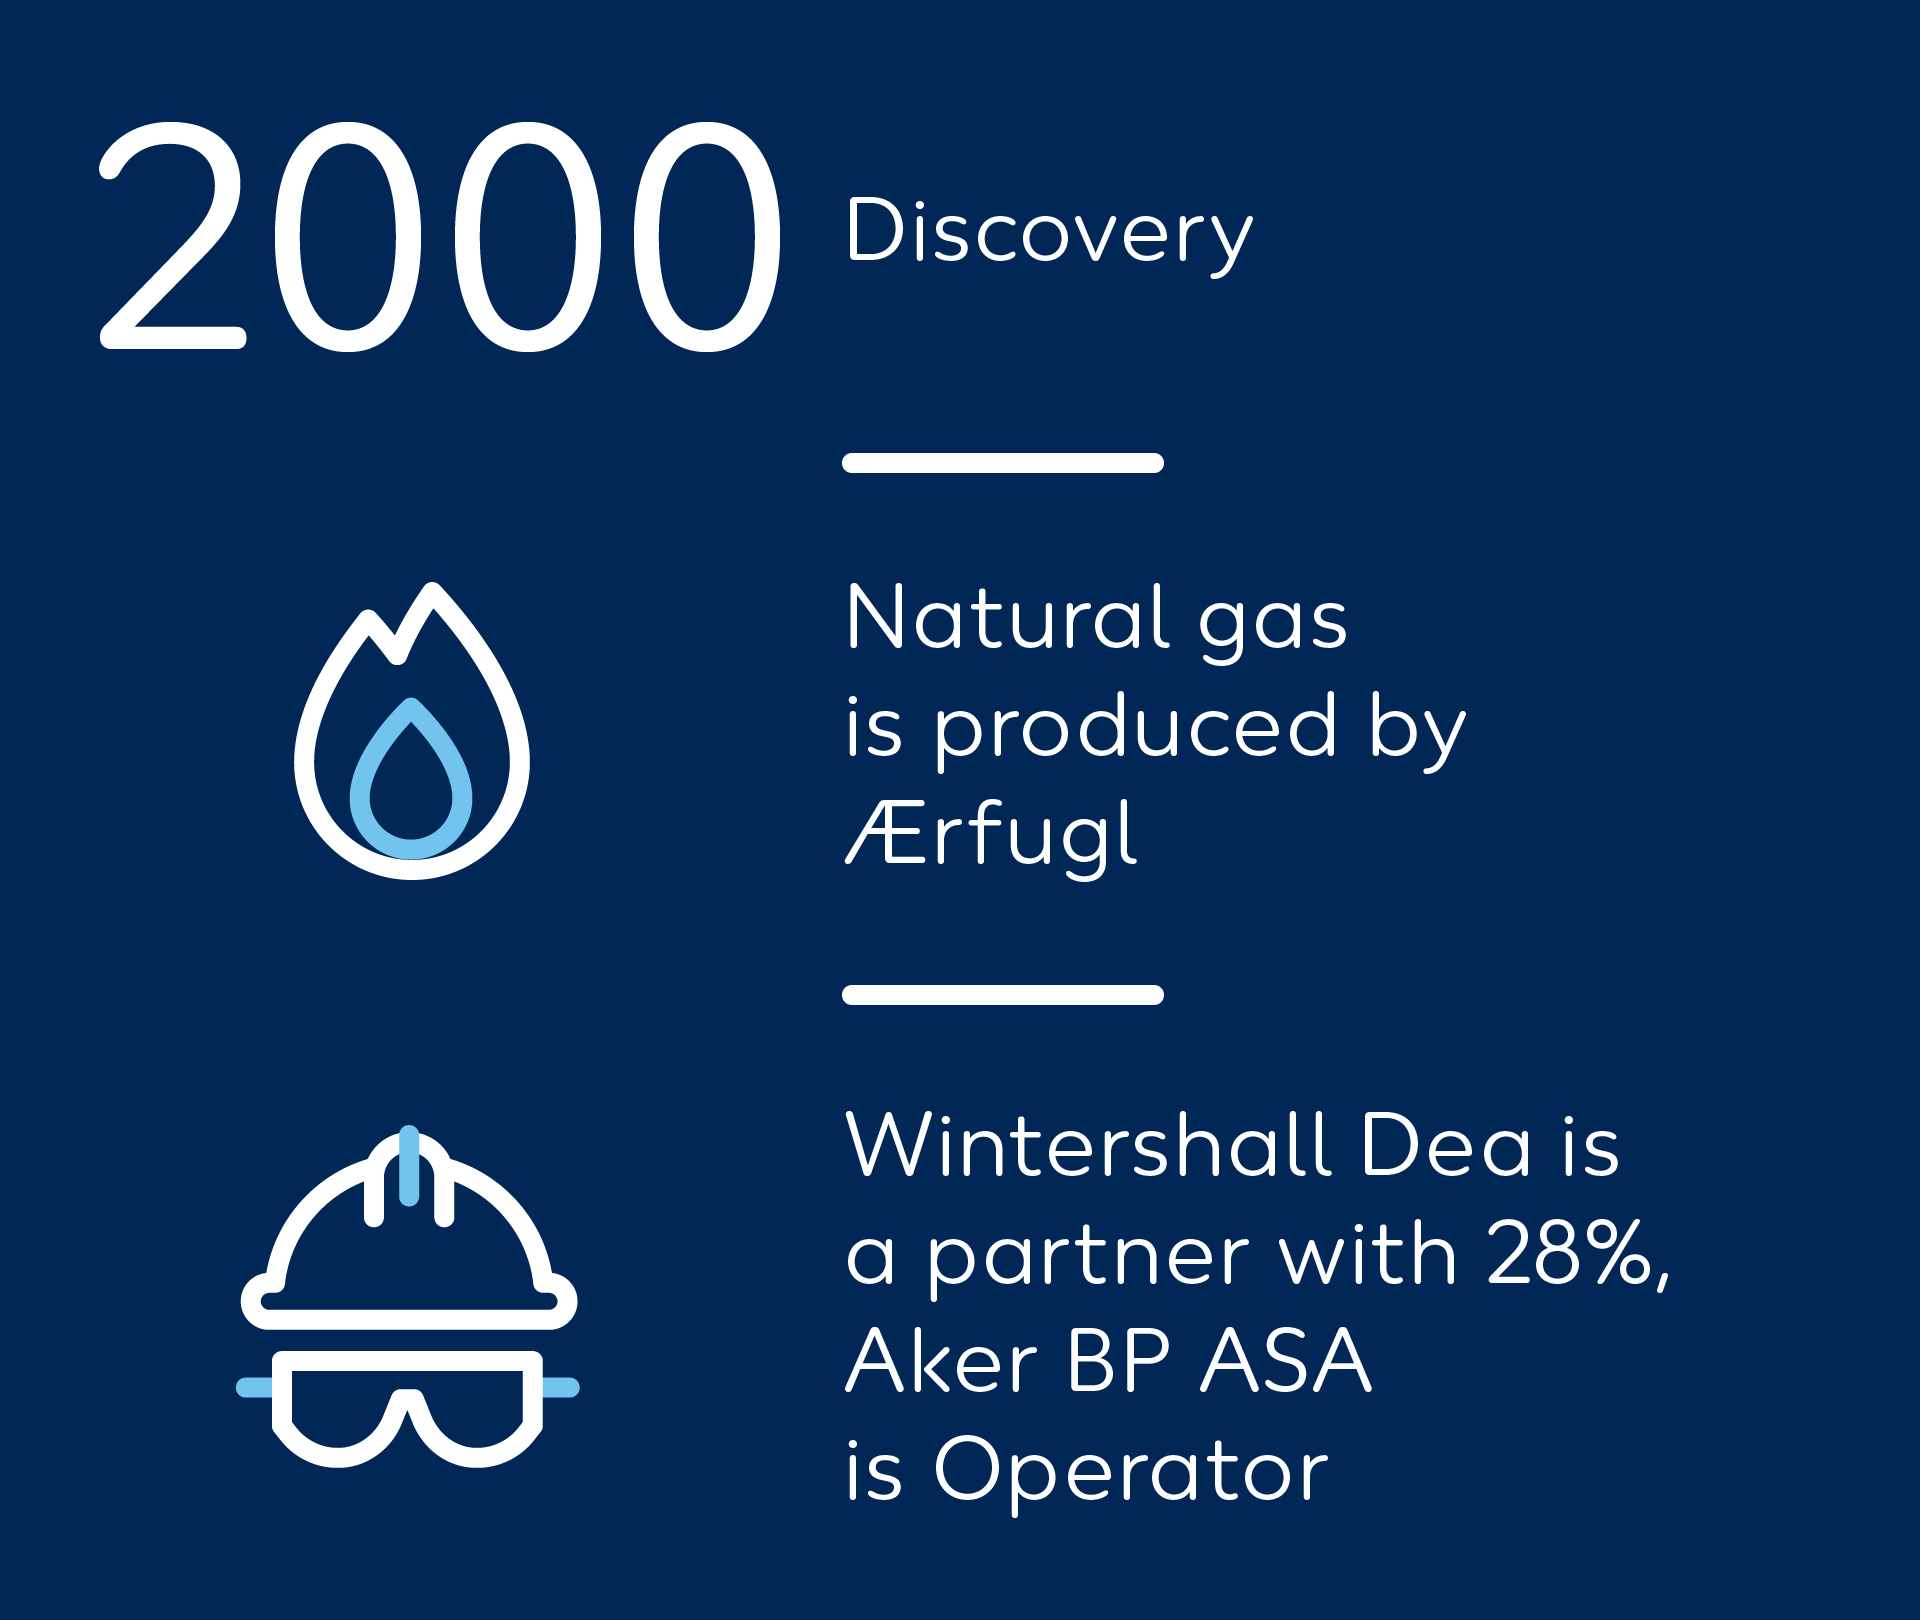 Wintershall Dea Quickfact Ærfugl Norway